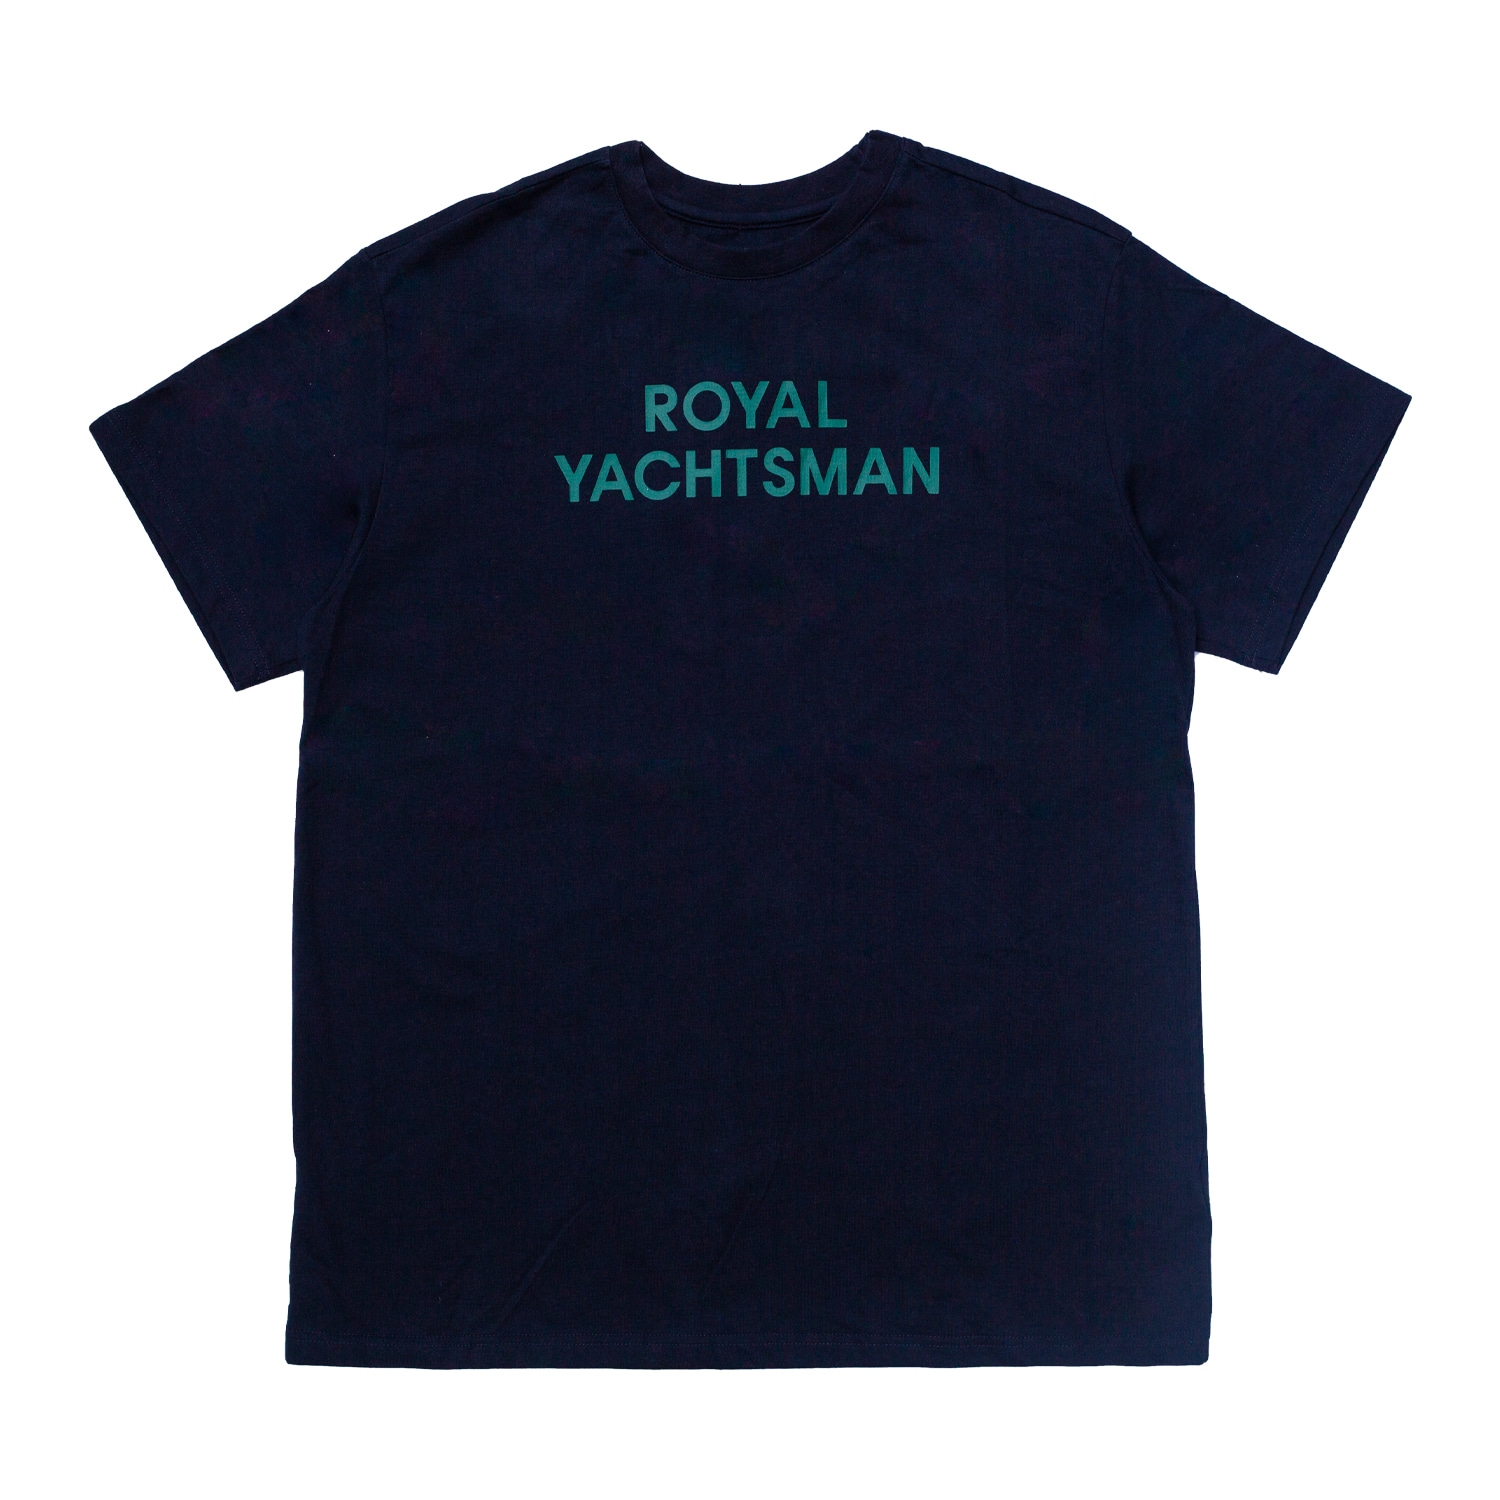 LOGO PRINTED T-SHIRT(NAVY)